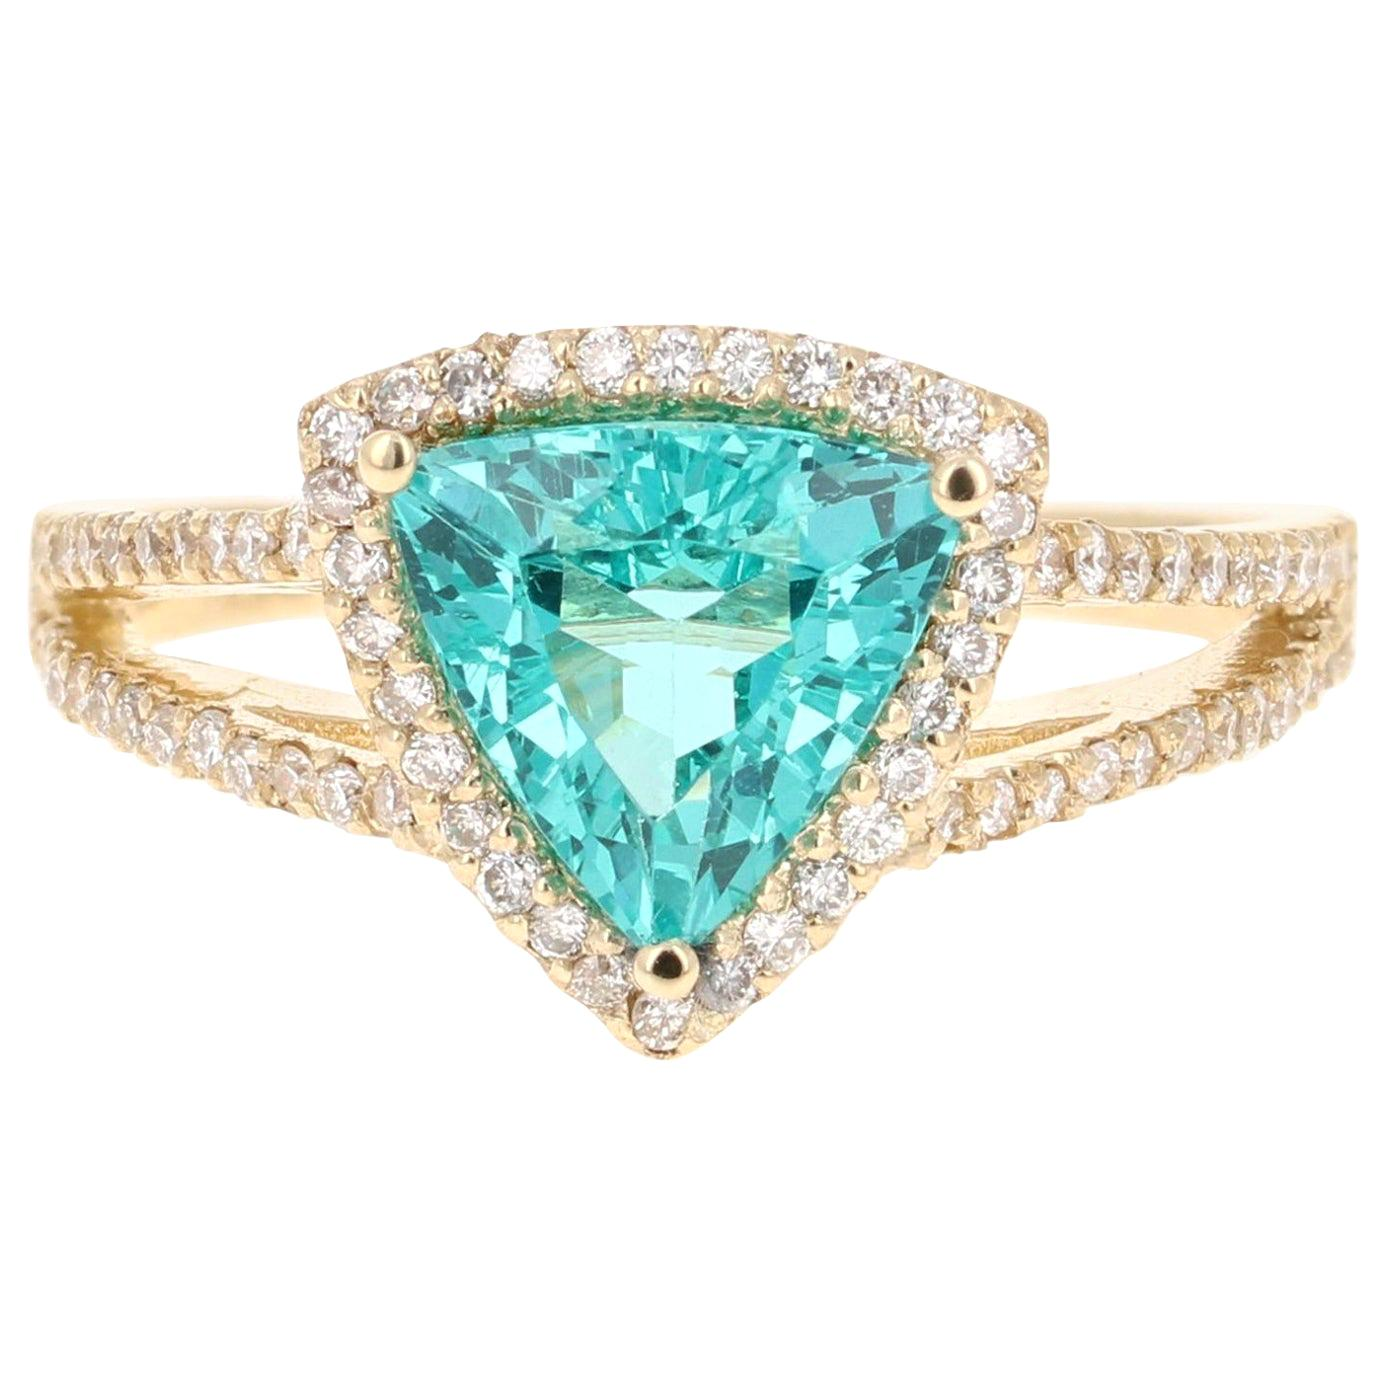 2.21 Carat Apatite Diamond 14 Karat Yellow Gold Cocktail Ring